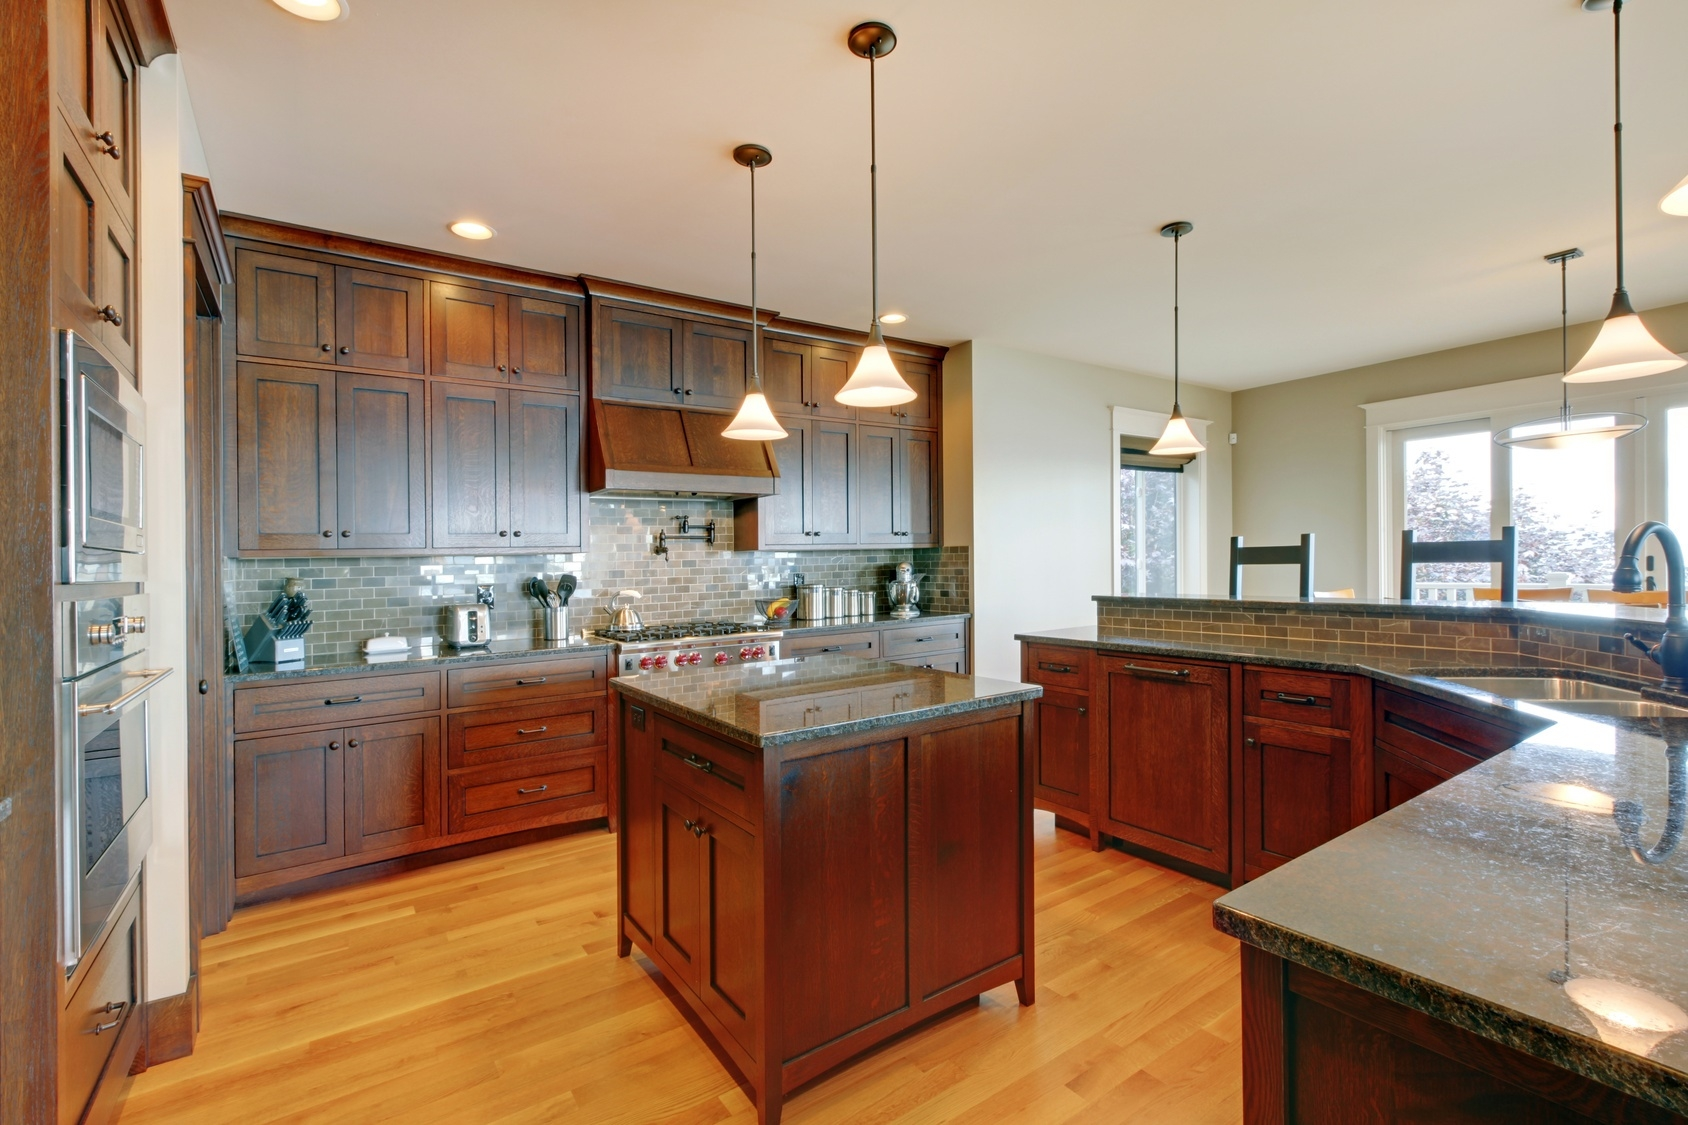 Choosing The Right Kitchen Cabinet Hardware